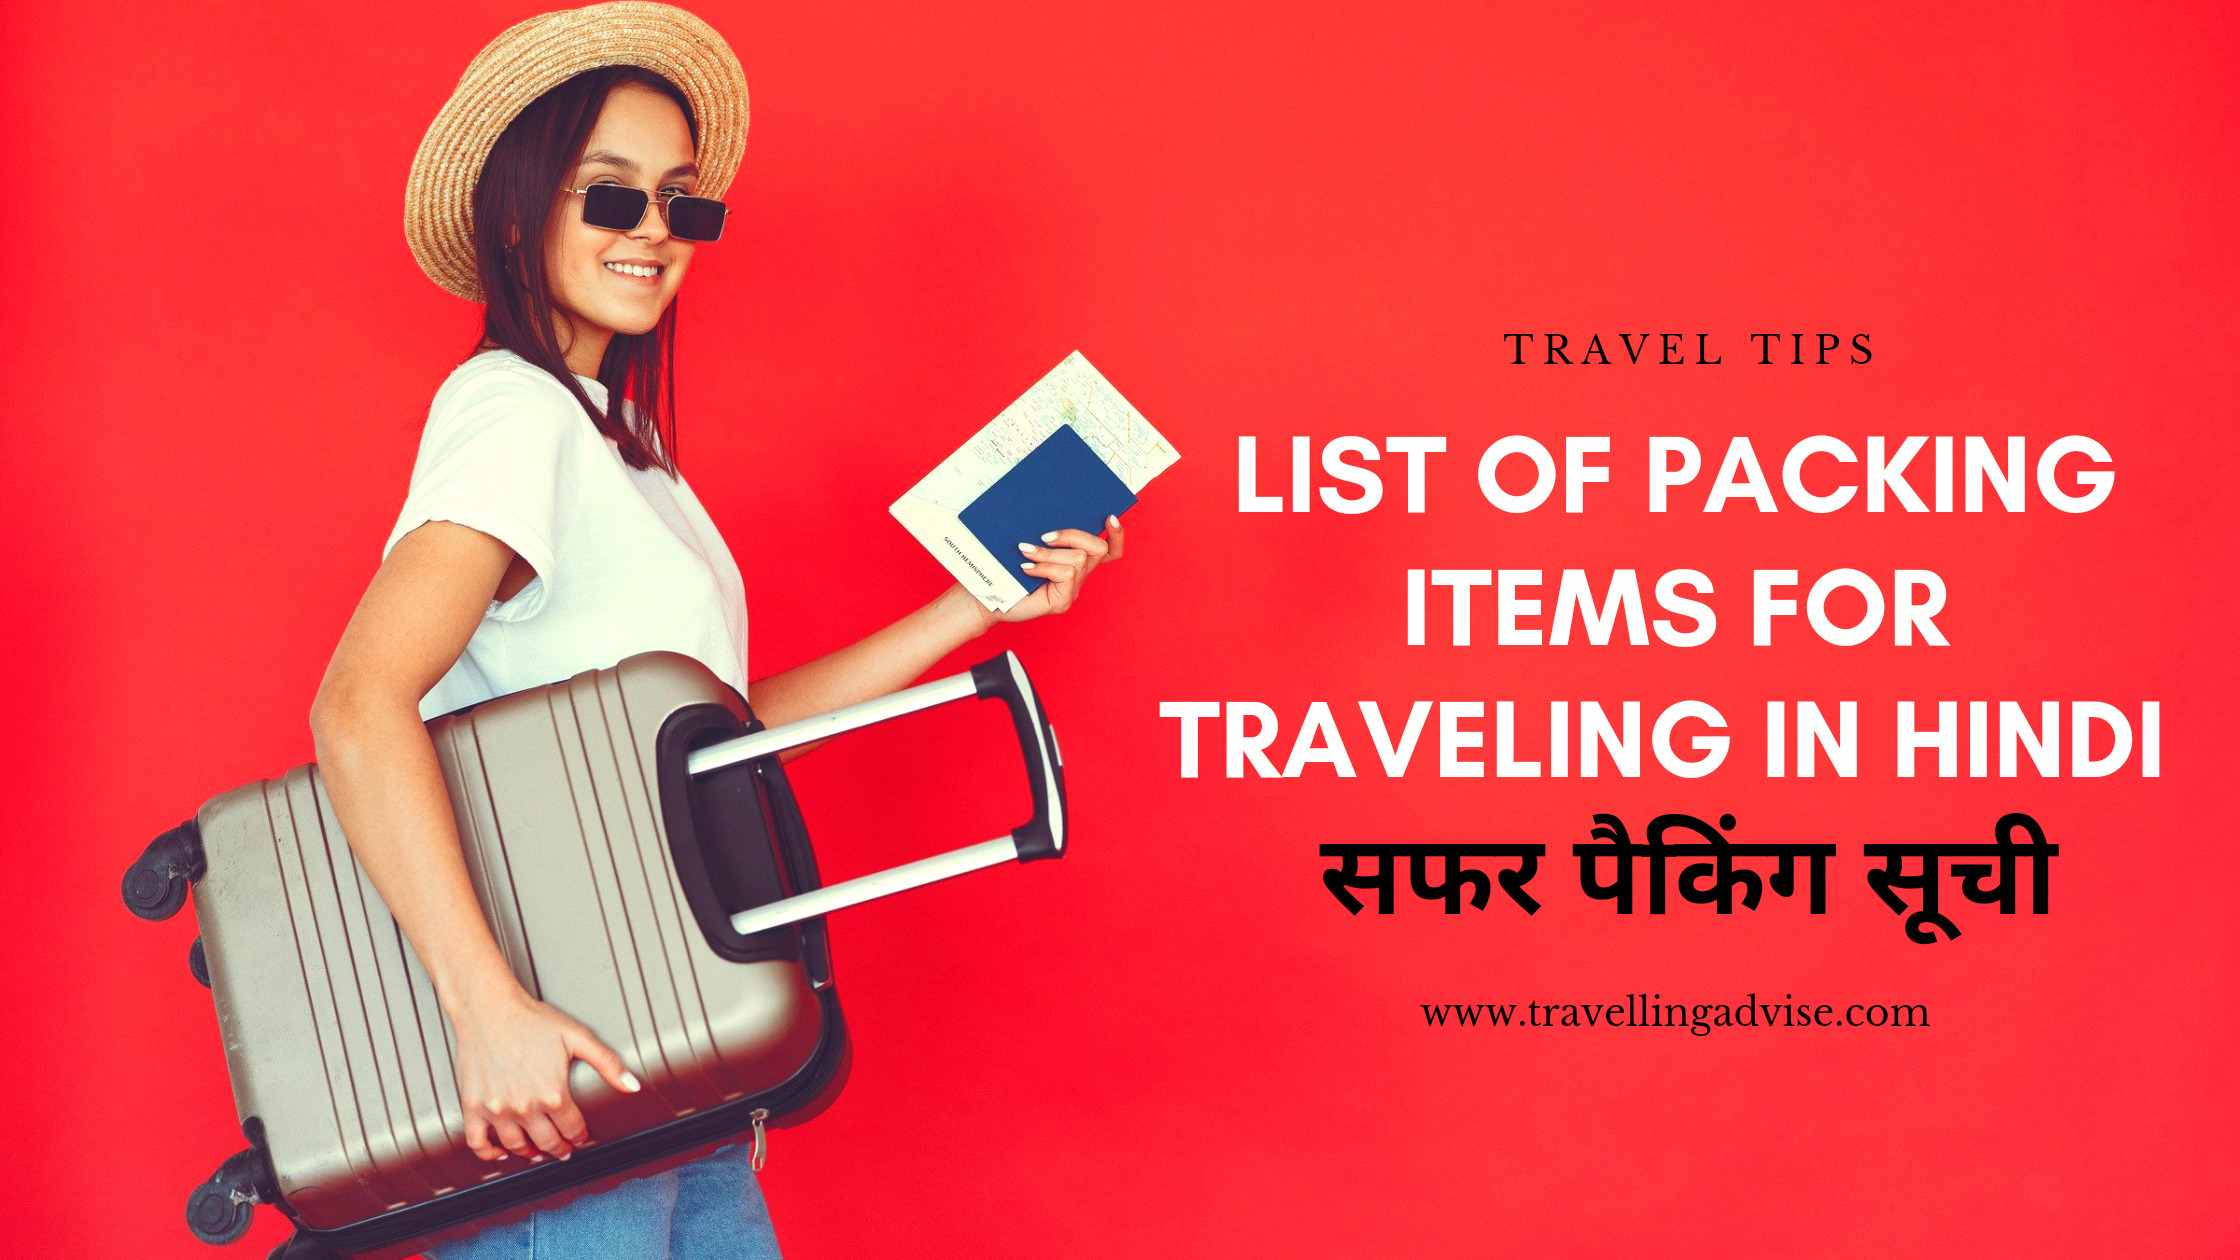 Best List of Packing Items for Traveling in Hindi | यात्रा सामान लिस्ट 2021